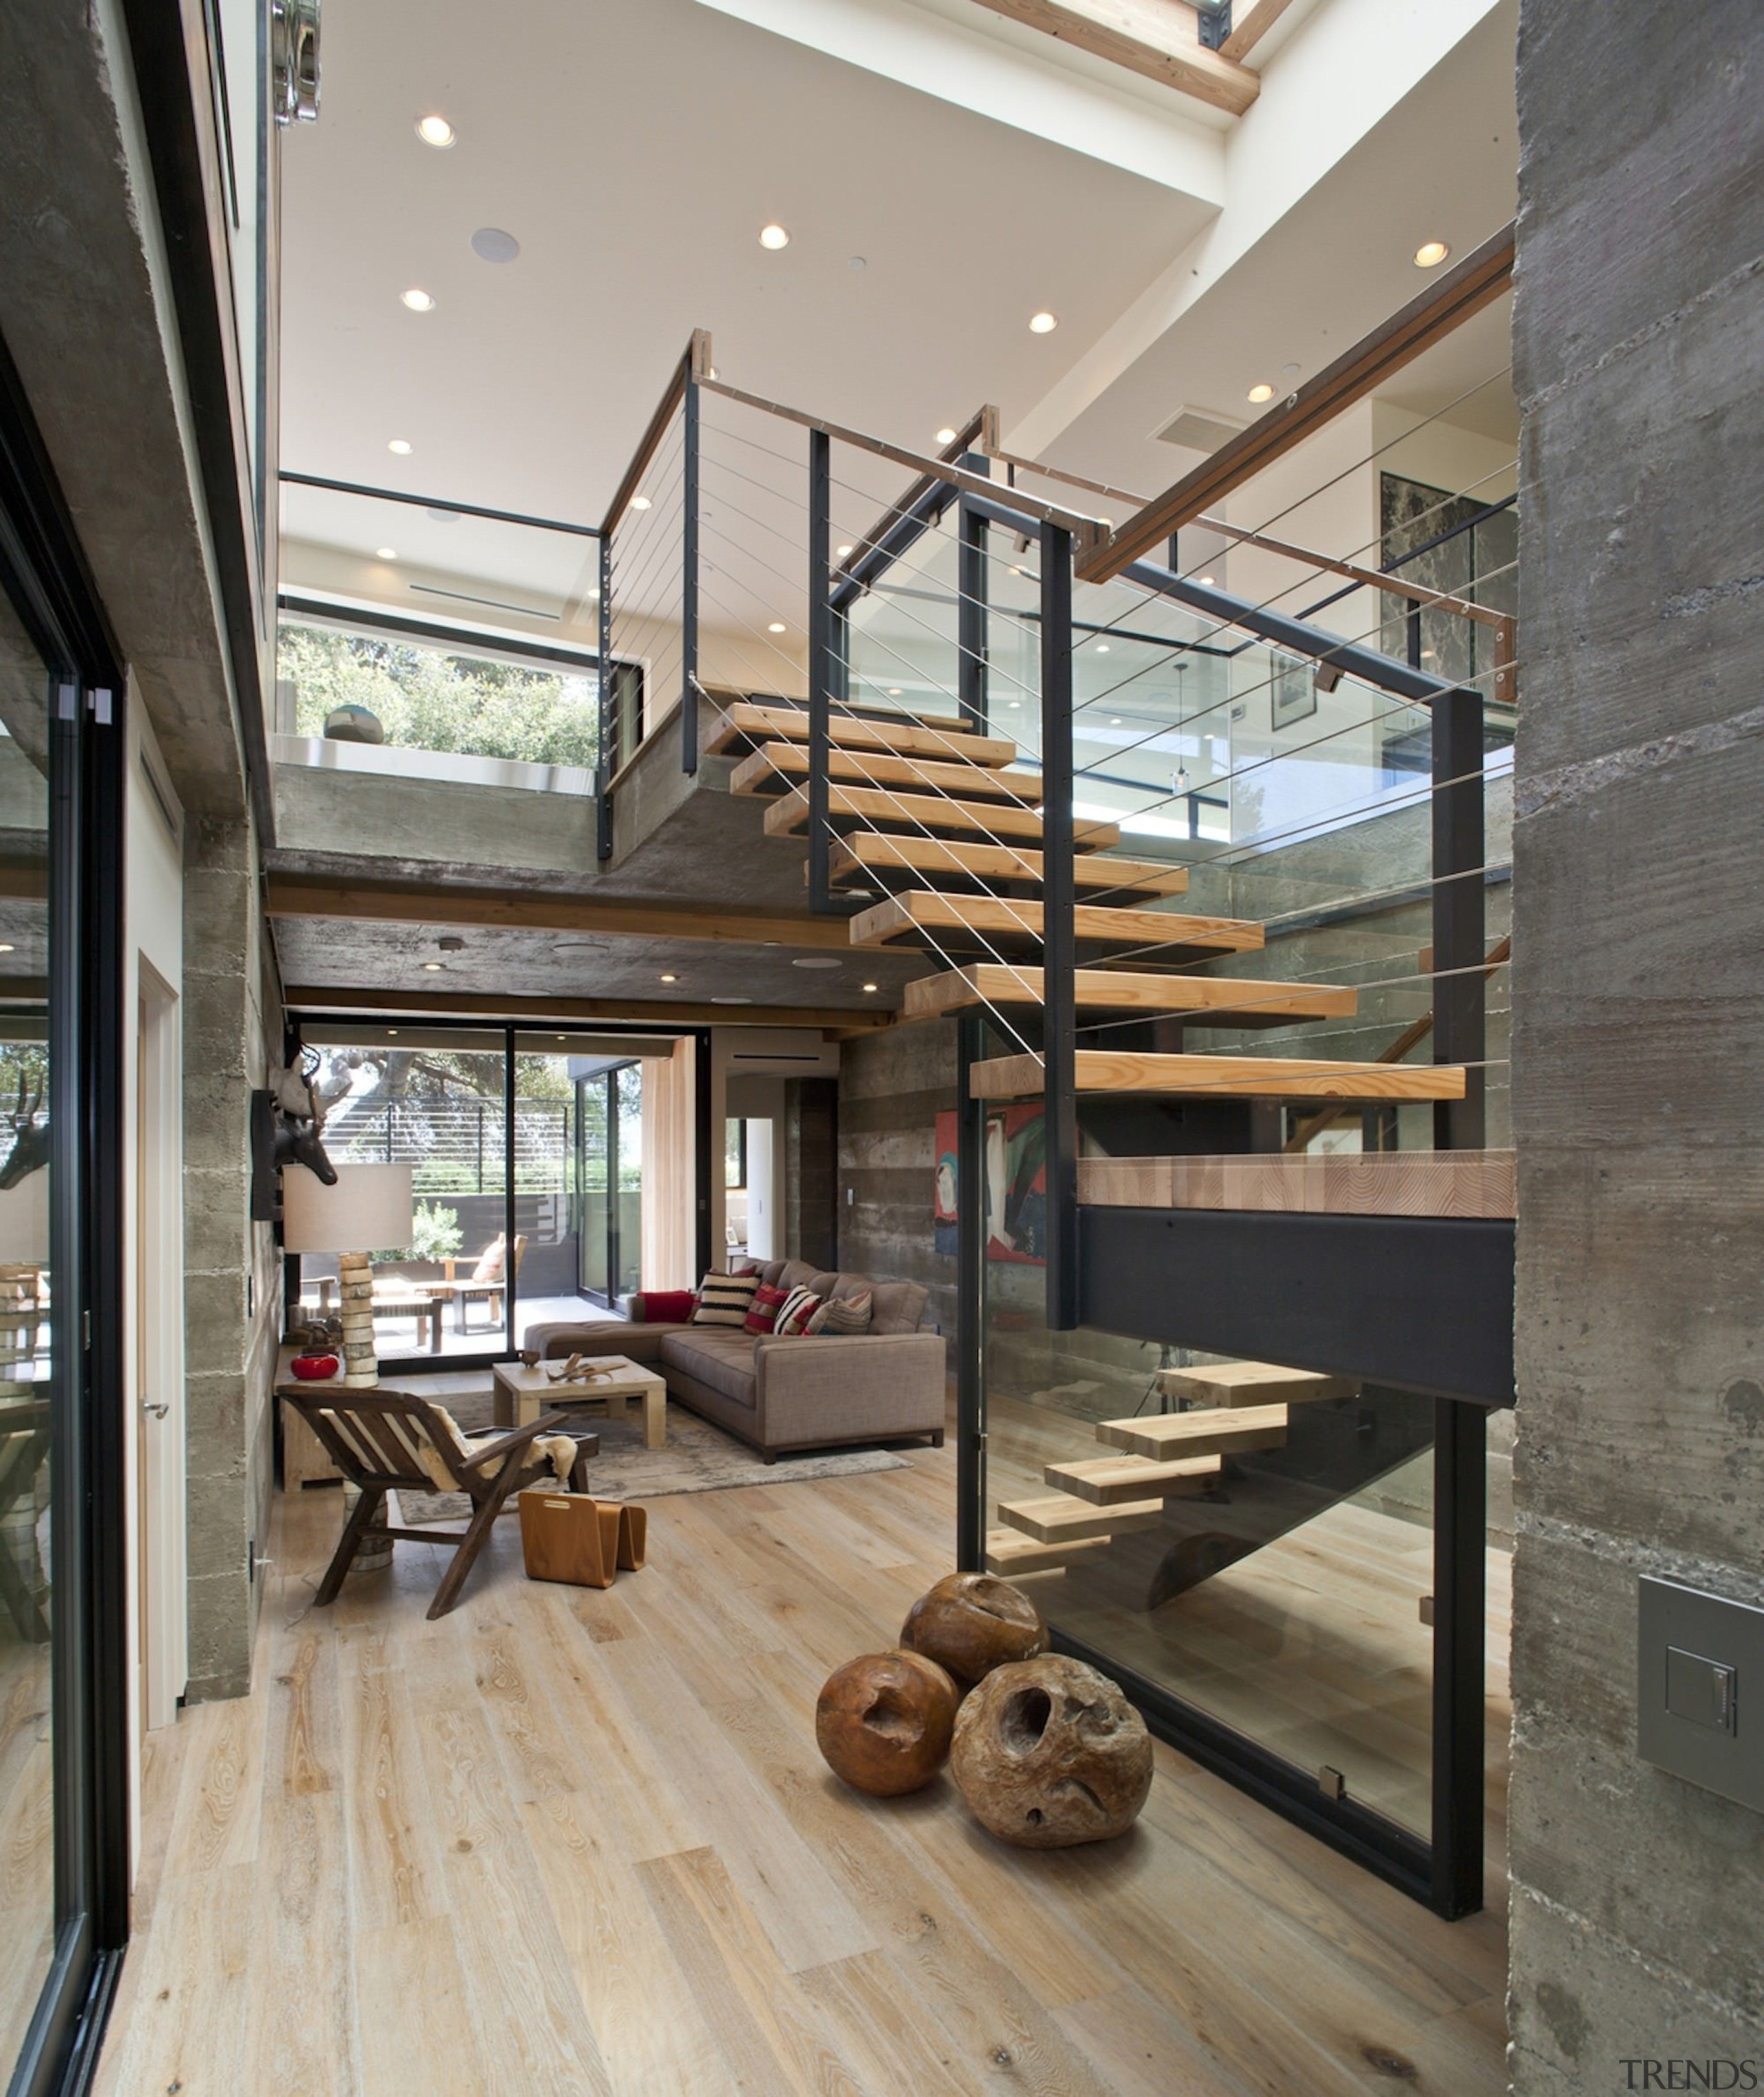 The staircase is the centrepiece of this central floor, handrail, house, interior design, stairs, gray